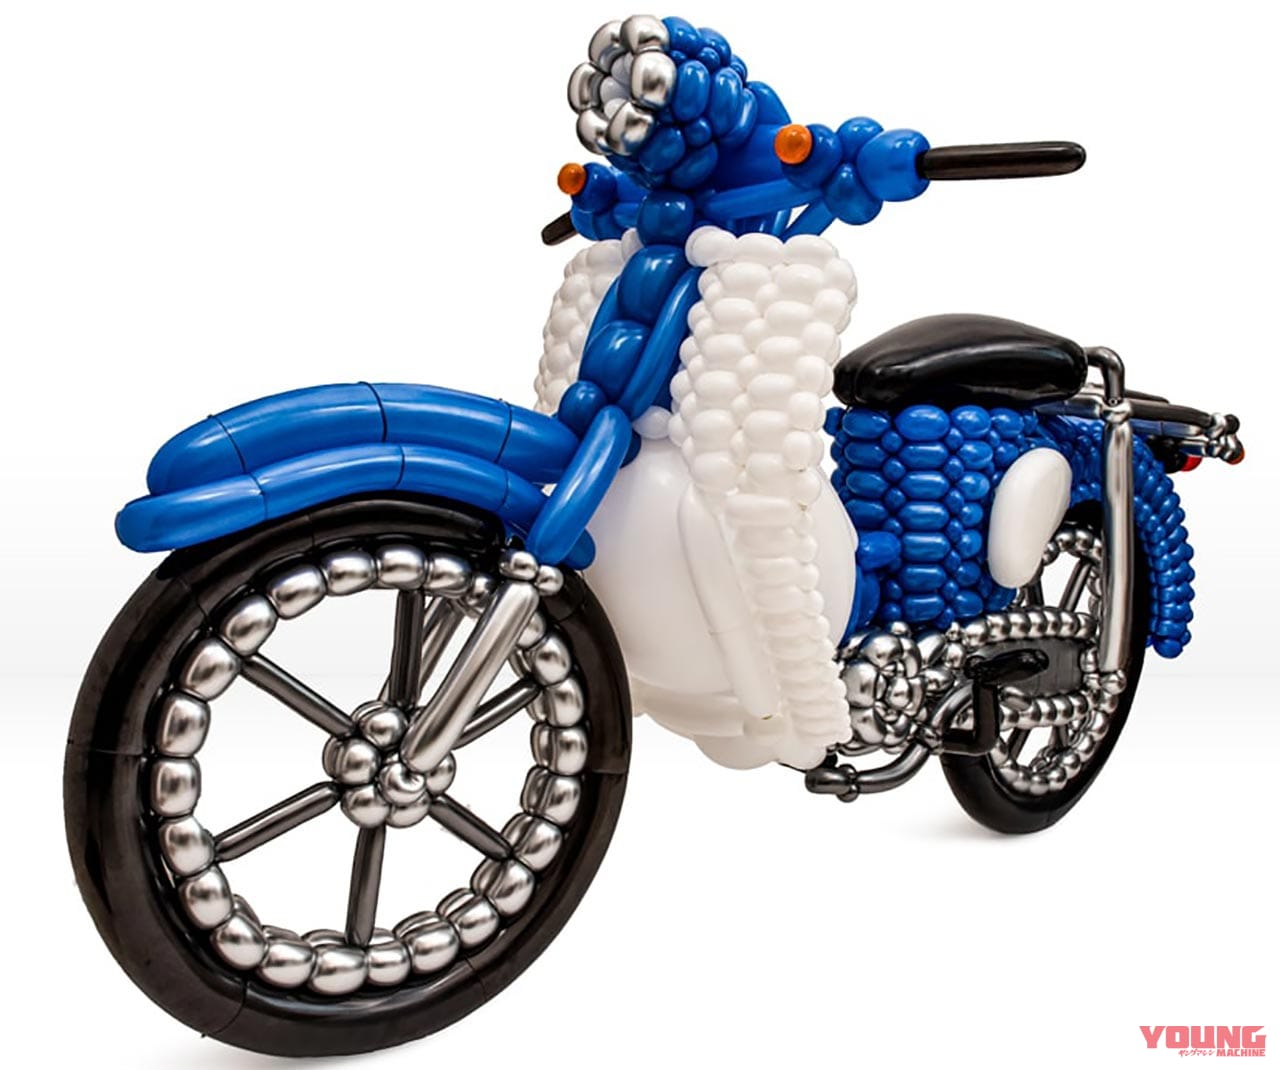 honda-the-power-of-crafts-02